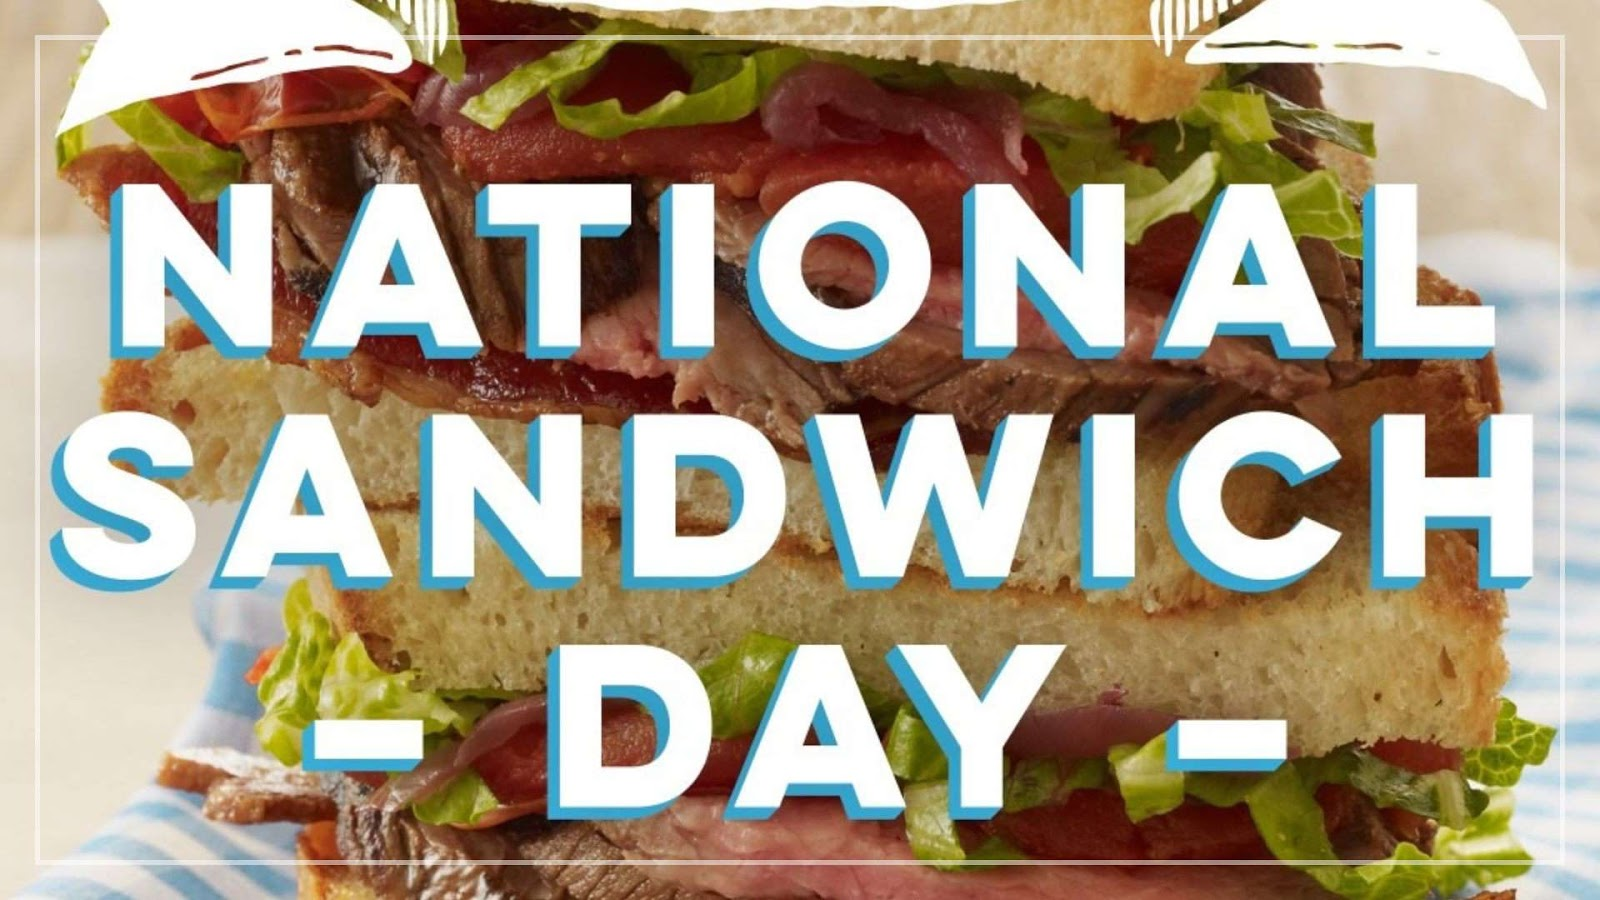 National Sandwich Day Wishes Awesome Images, Pictures, Photos, Wallpapers